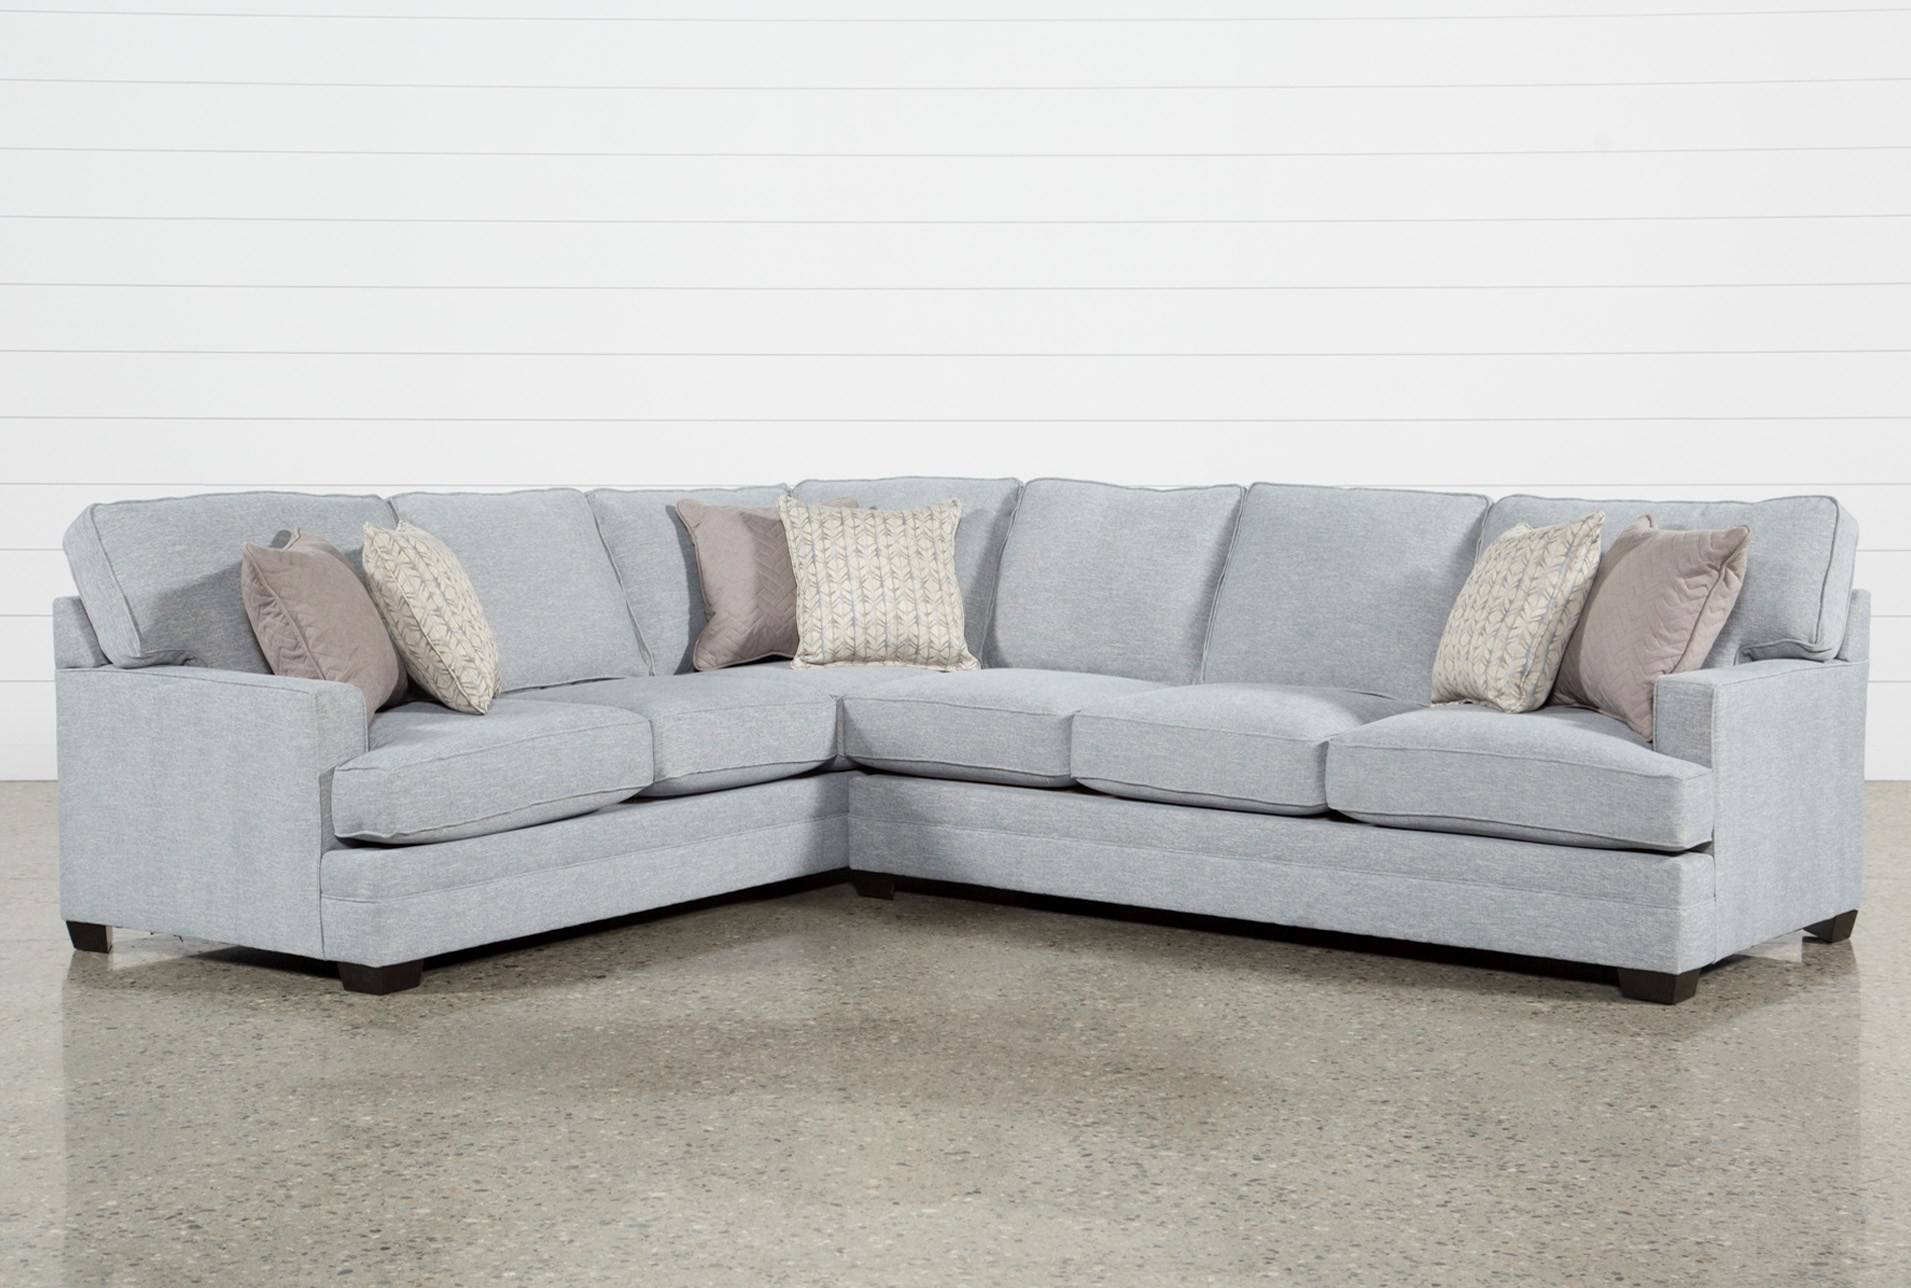 Living Spaces Sectional Couches – Implantologiabogota (View 13 of 25)